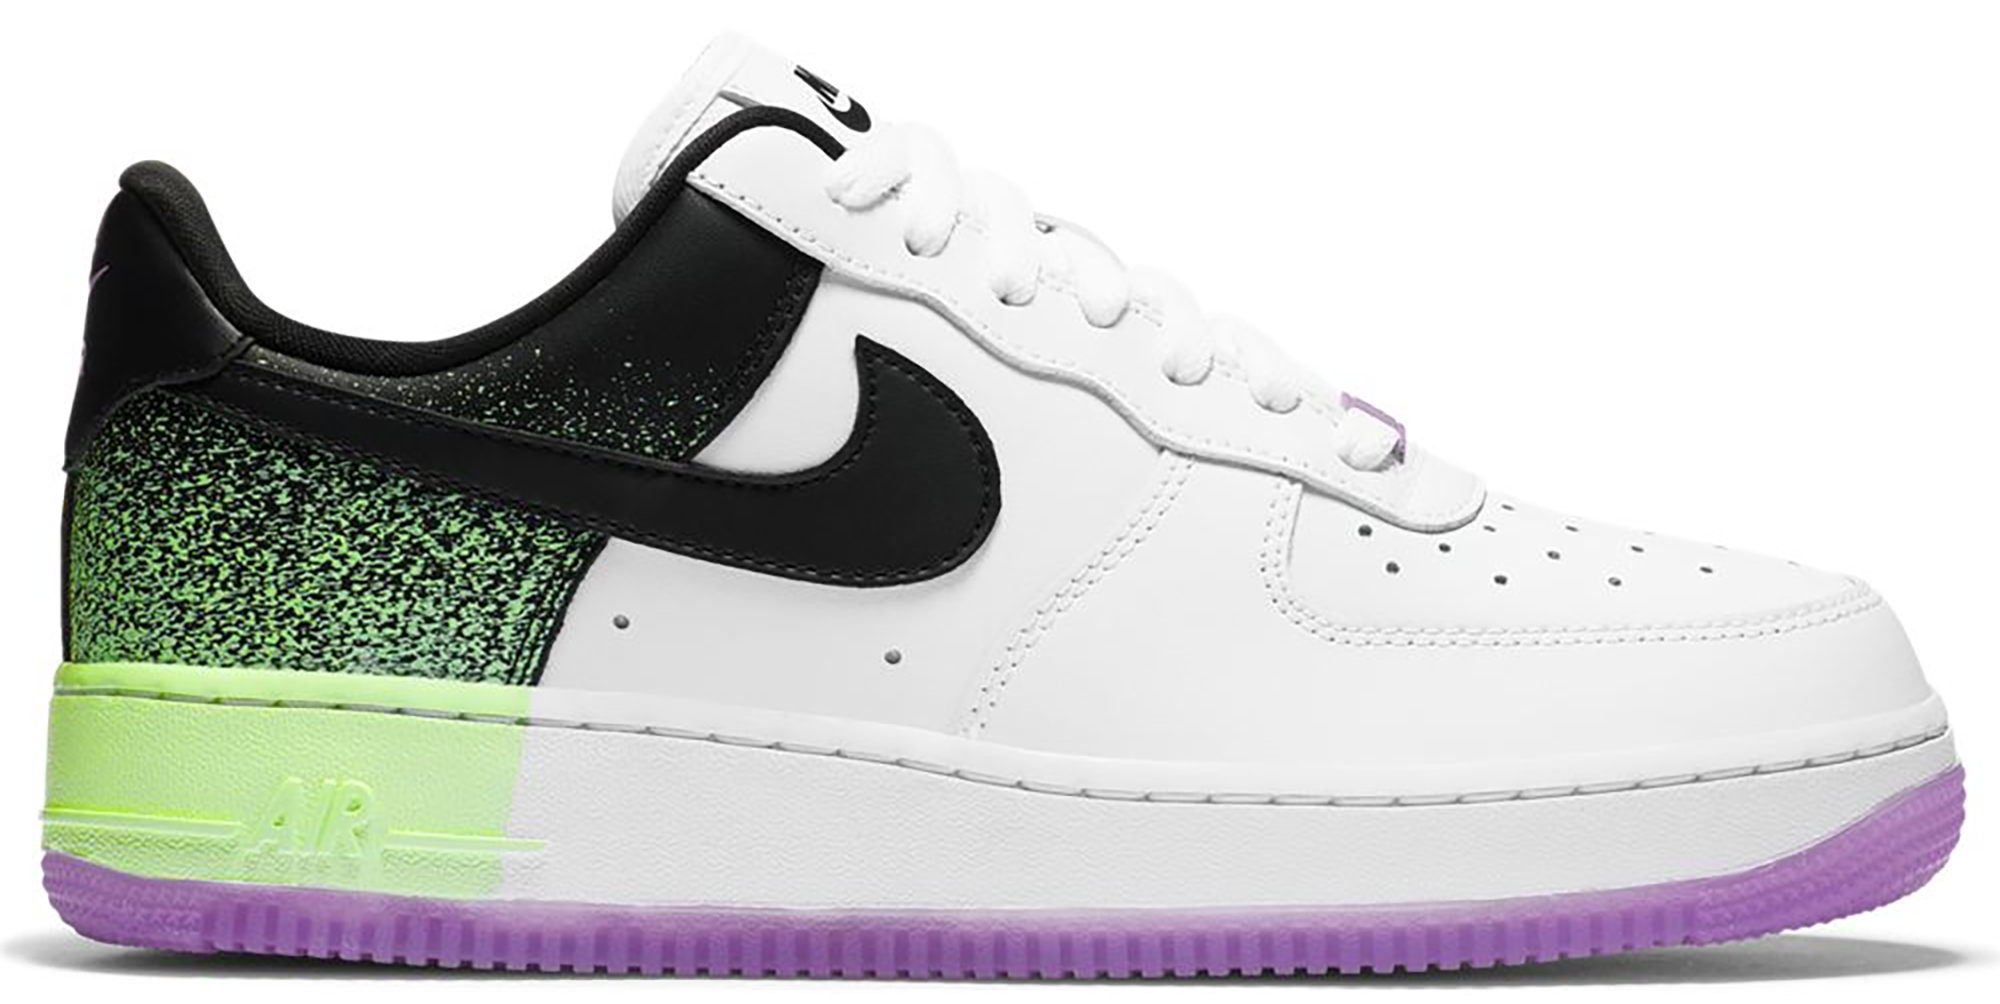 Nike Air Force 1 Low Splatter Barely